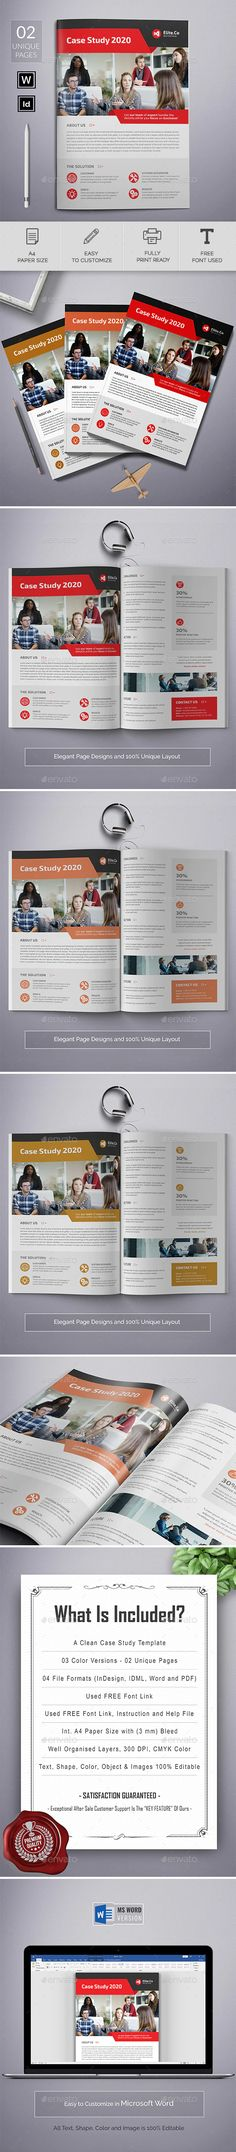 Case Study Word This Modern and Clean Caste Study Template will give you a sample structure for your case study. You can use this Case Study Template to showcase your company's successes and it will help you to gain new customers in the process. Case Study Template, Understanding Yourself, Brochure Template, Problem Solving, Content Marketing, Old Things, How Are You Feeling, Challenges, Templates